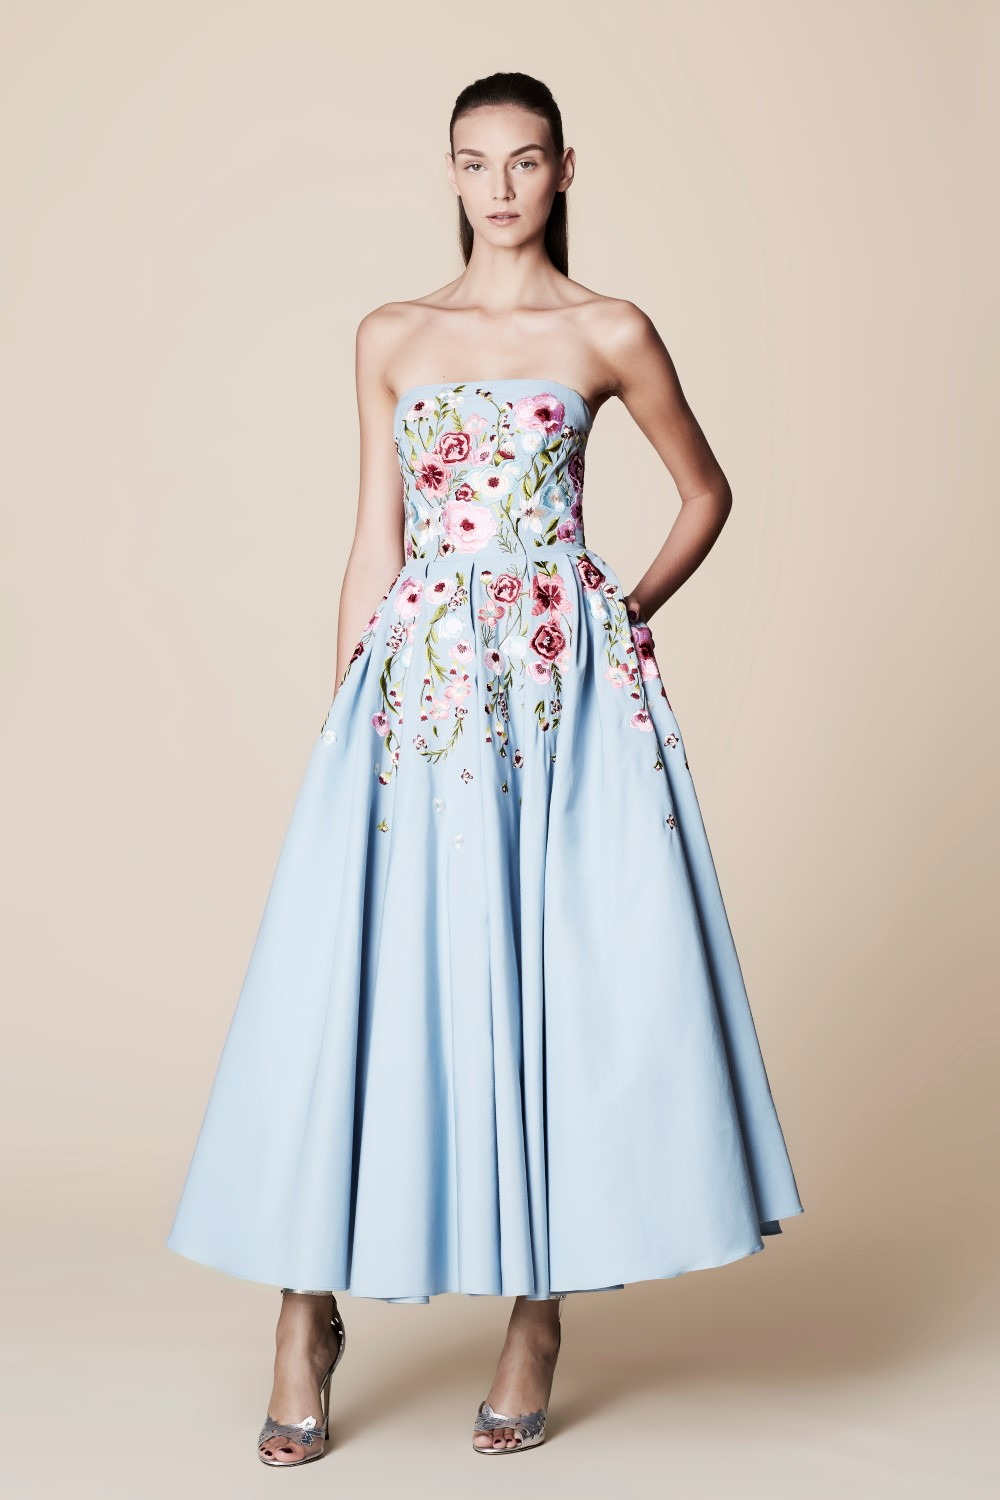 NON-TRADITIONAL WEDDING DRESSES - Belle Meets World